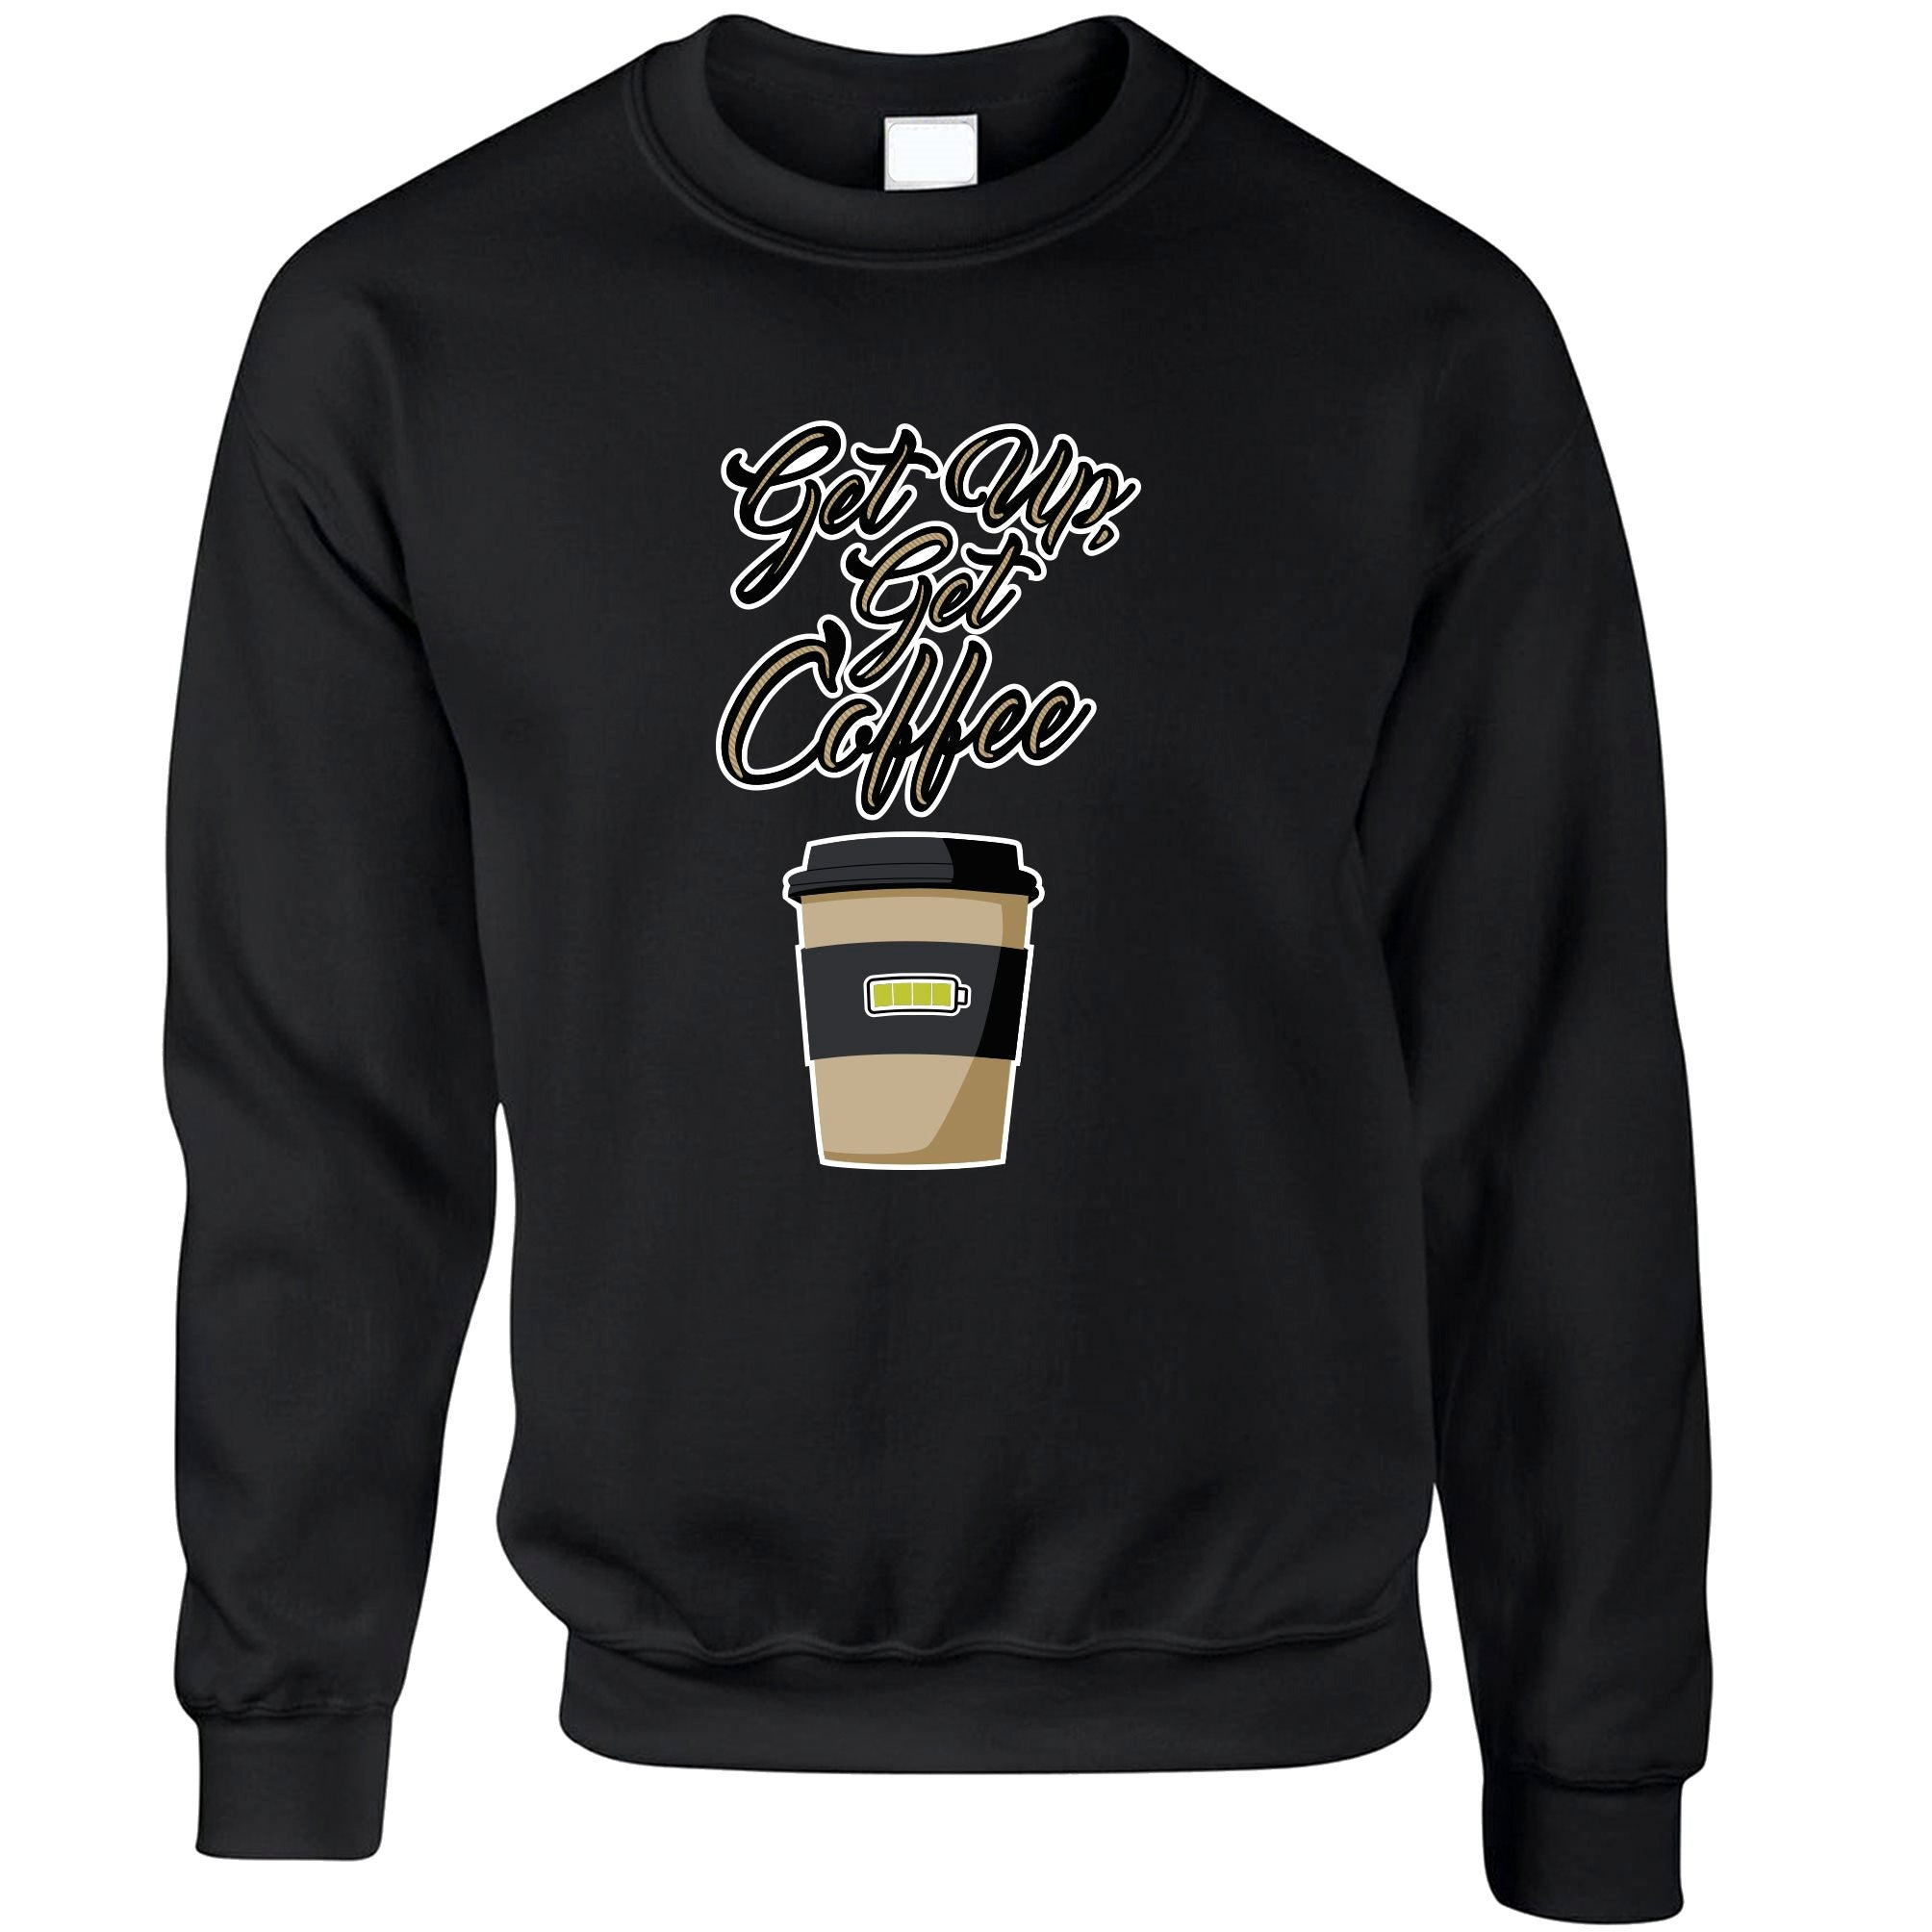 Morning Motivation Jumper Get Up, Get Coffee Slogan Sweatshirt Sweater